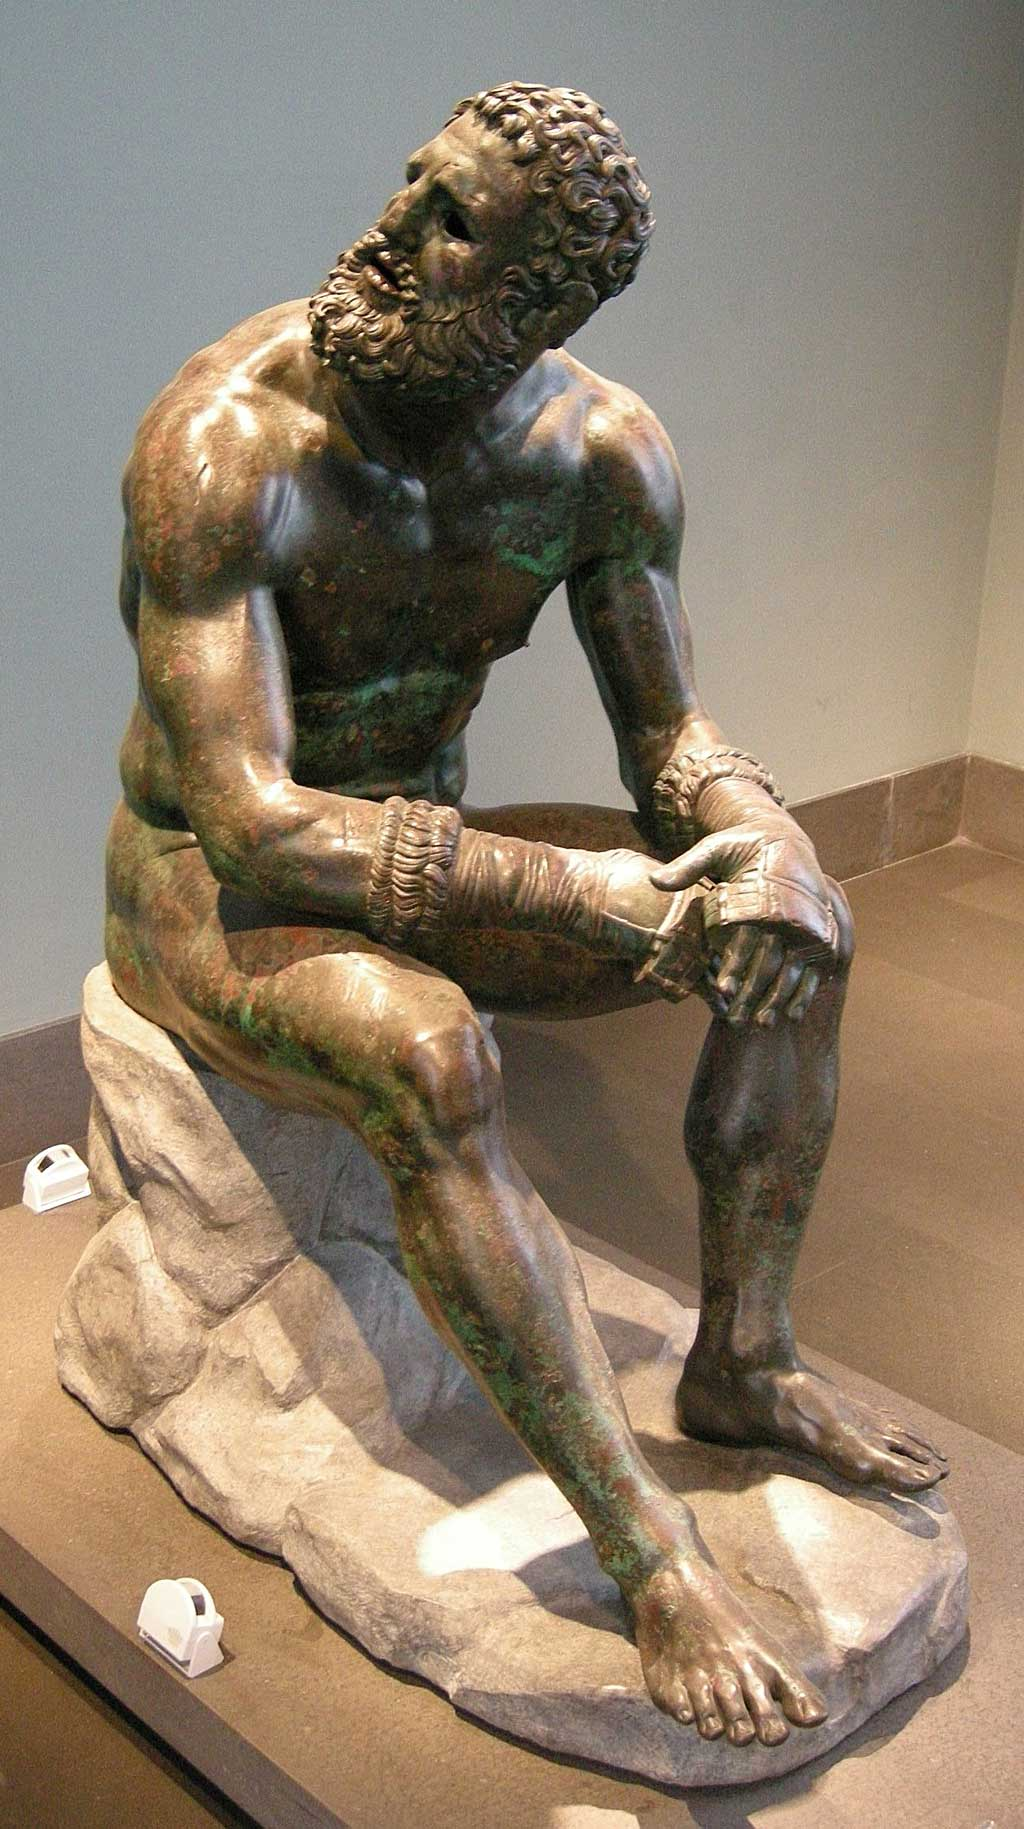 Image of the Boxer statue. The bearded man sits on a stone, looking upwards while wearing the leather gloves still strapped around both hands.